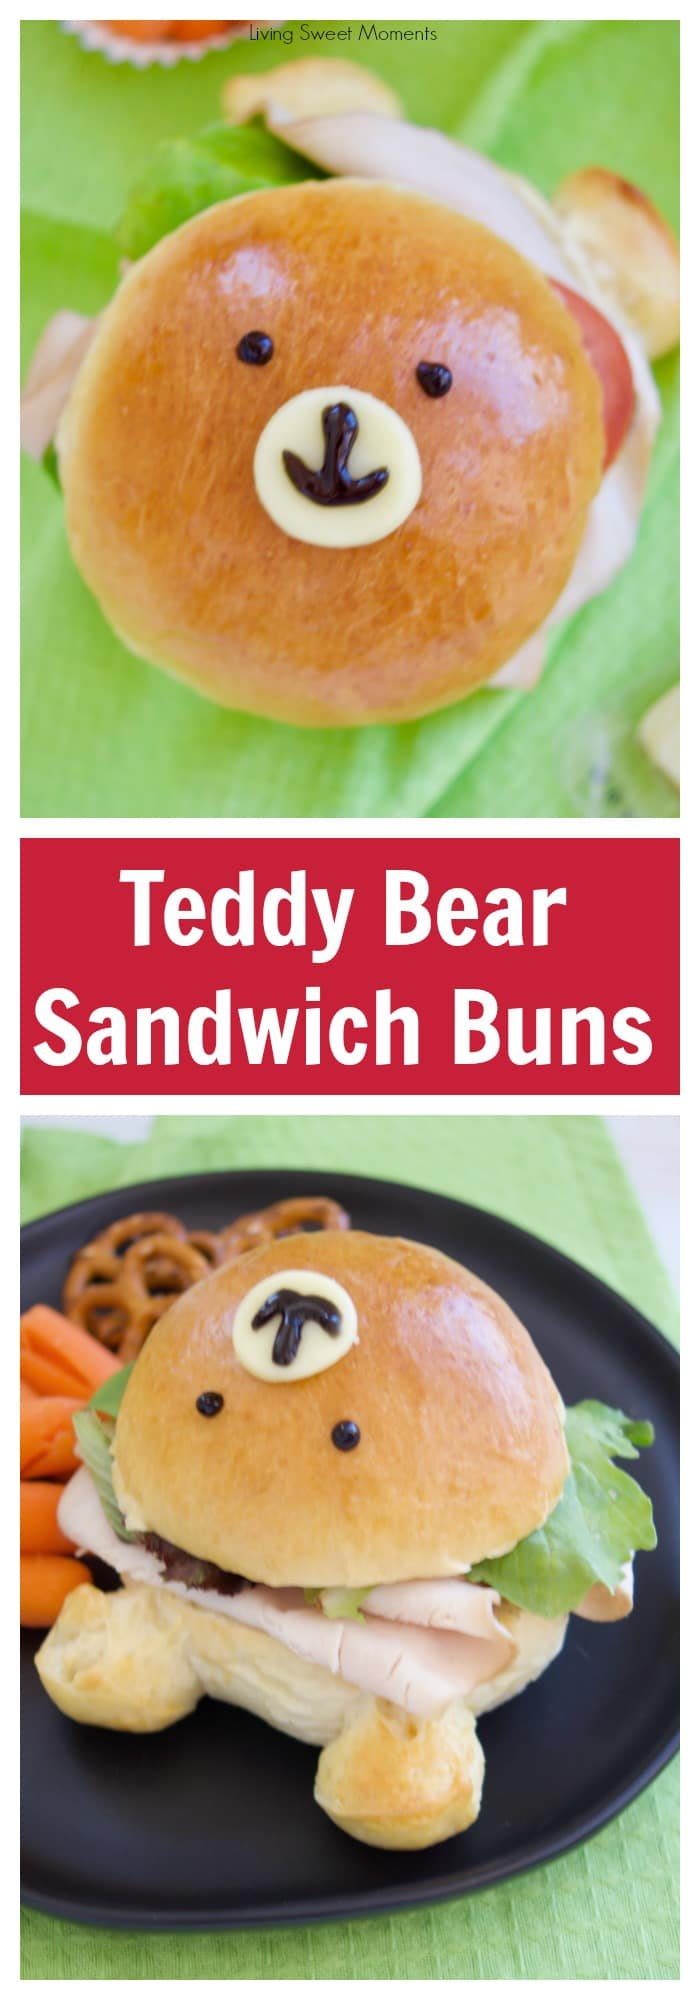 Check out how to make these delicious & adorable Teddy Bear Sandwich Buns. Fill them with your favorite ingredients. Perfect for the lunchbox! More back to school recipes at livingsweetmoments.com #ad